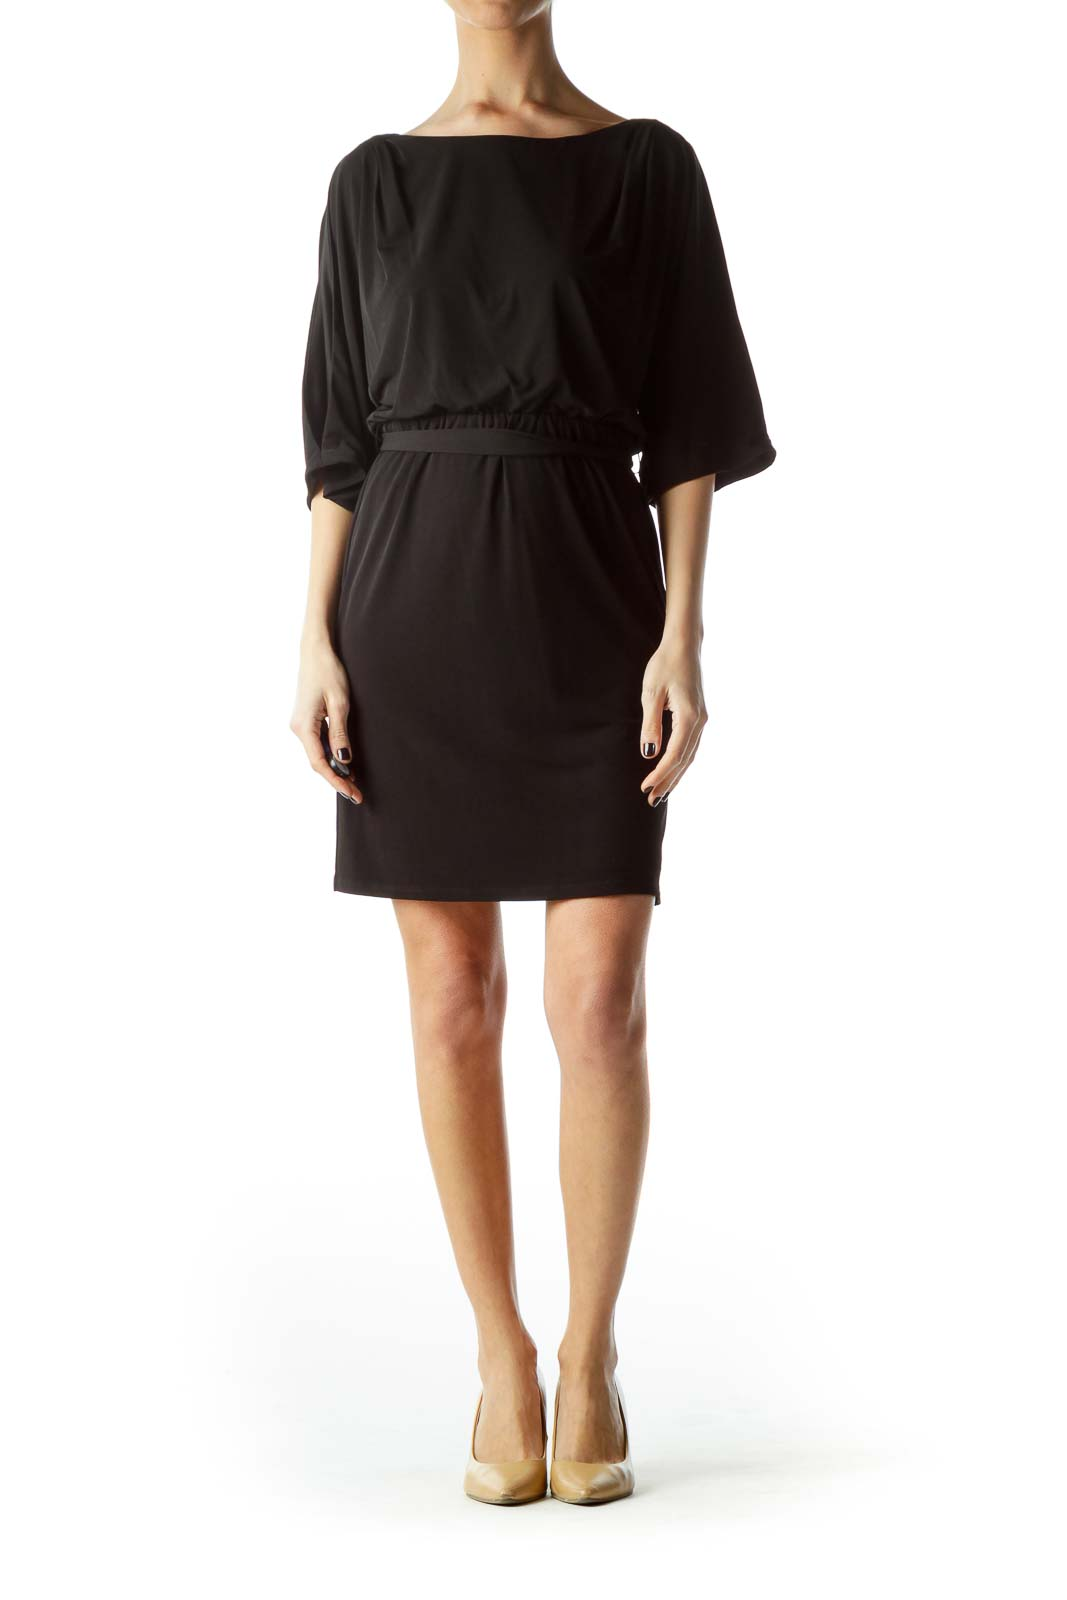 Black Bat Sleeve Cut-Out Work Dress